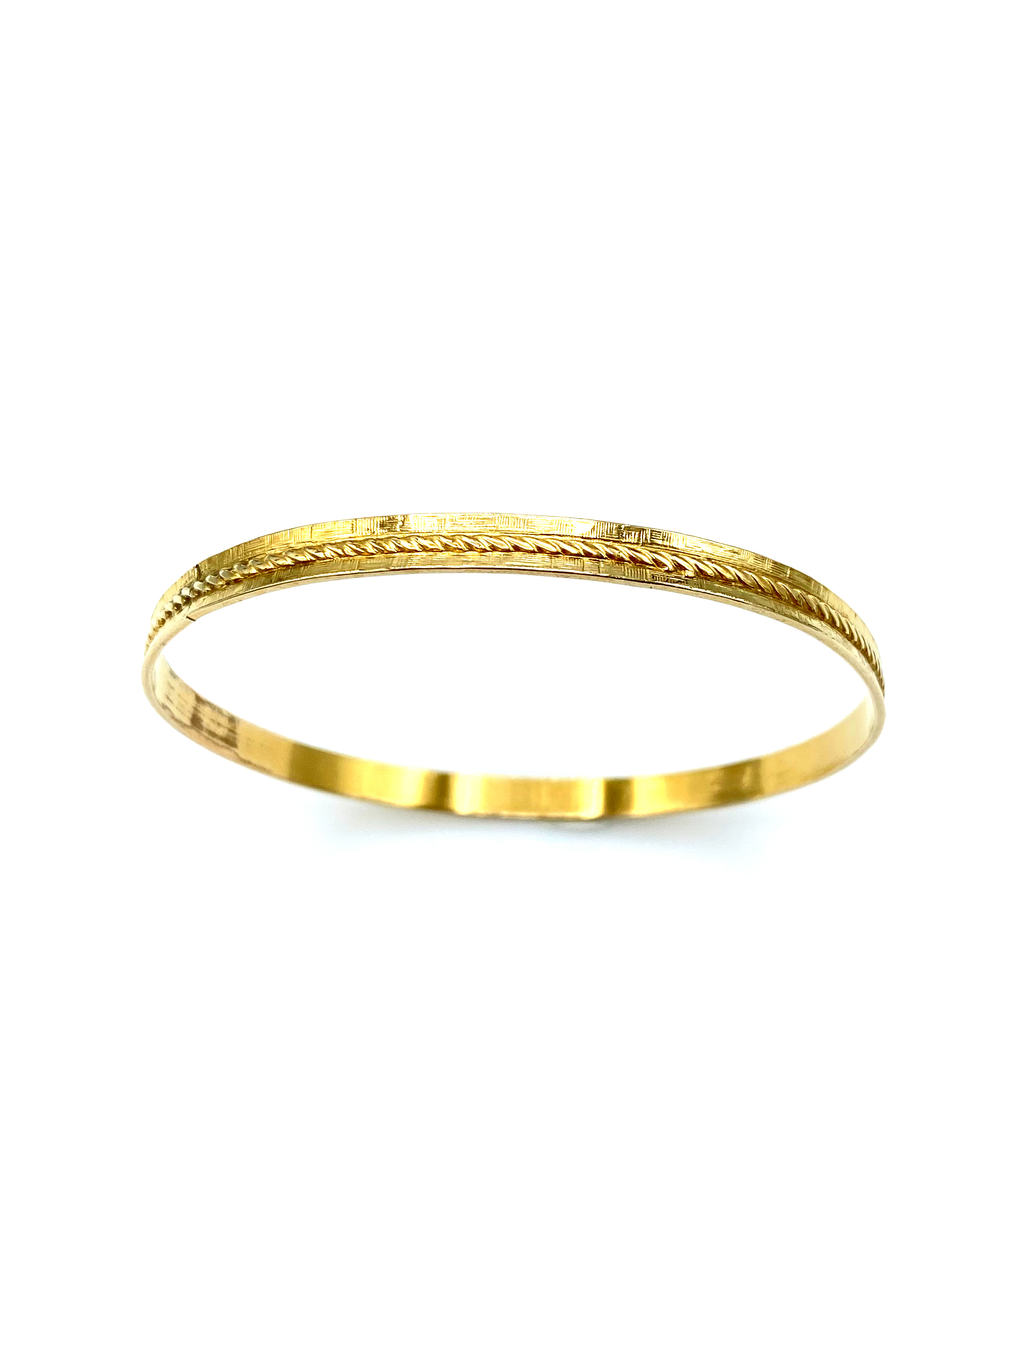 Gold Filled Danecraft Thin Twisted Rope Vintage Bangle Bracelet-Sustainable Fashion with Vintage Style-Trending Designer Fashion-24 Wishes